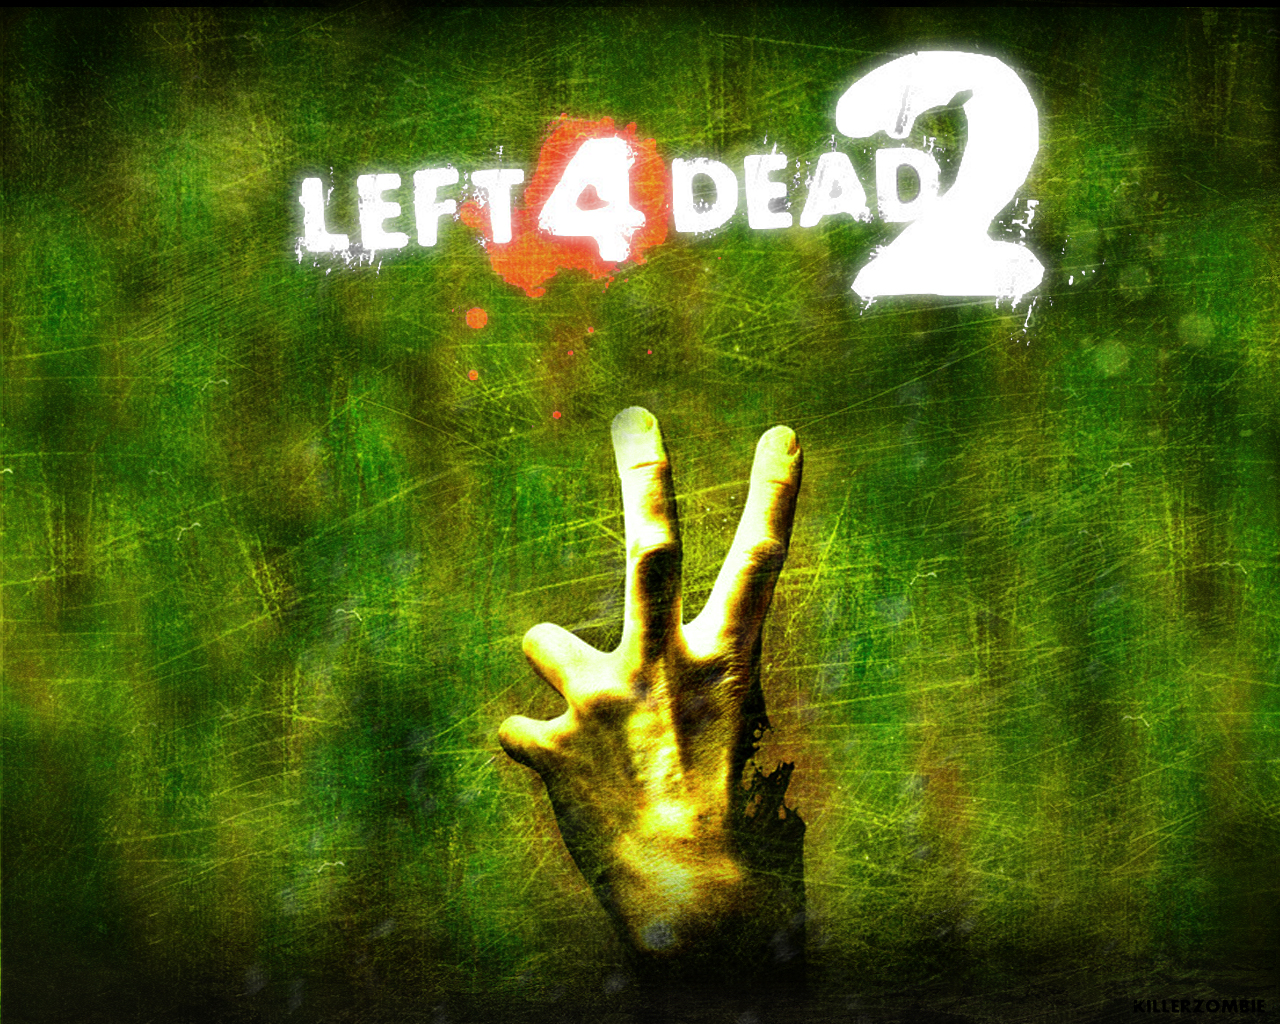 Left 4 Dead / Left 4 Dead 2 | ScreenArchery Wiki | FANDOM